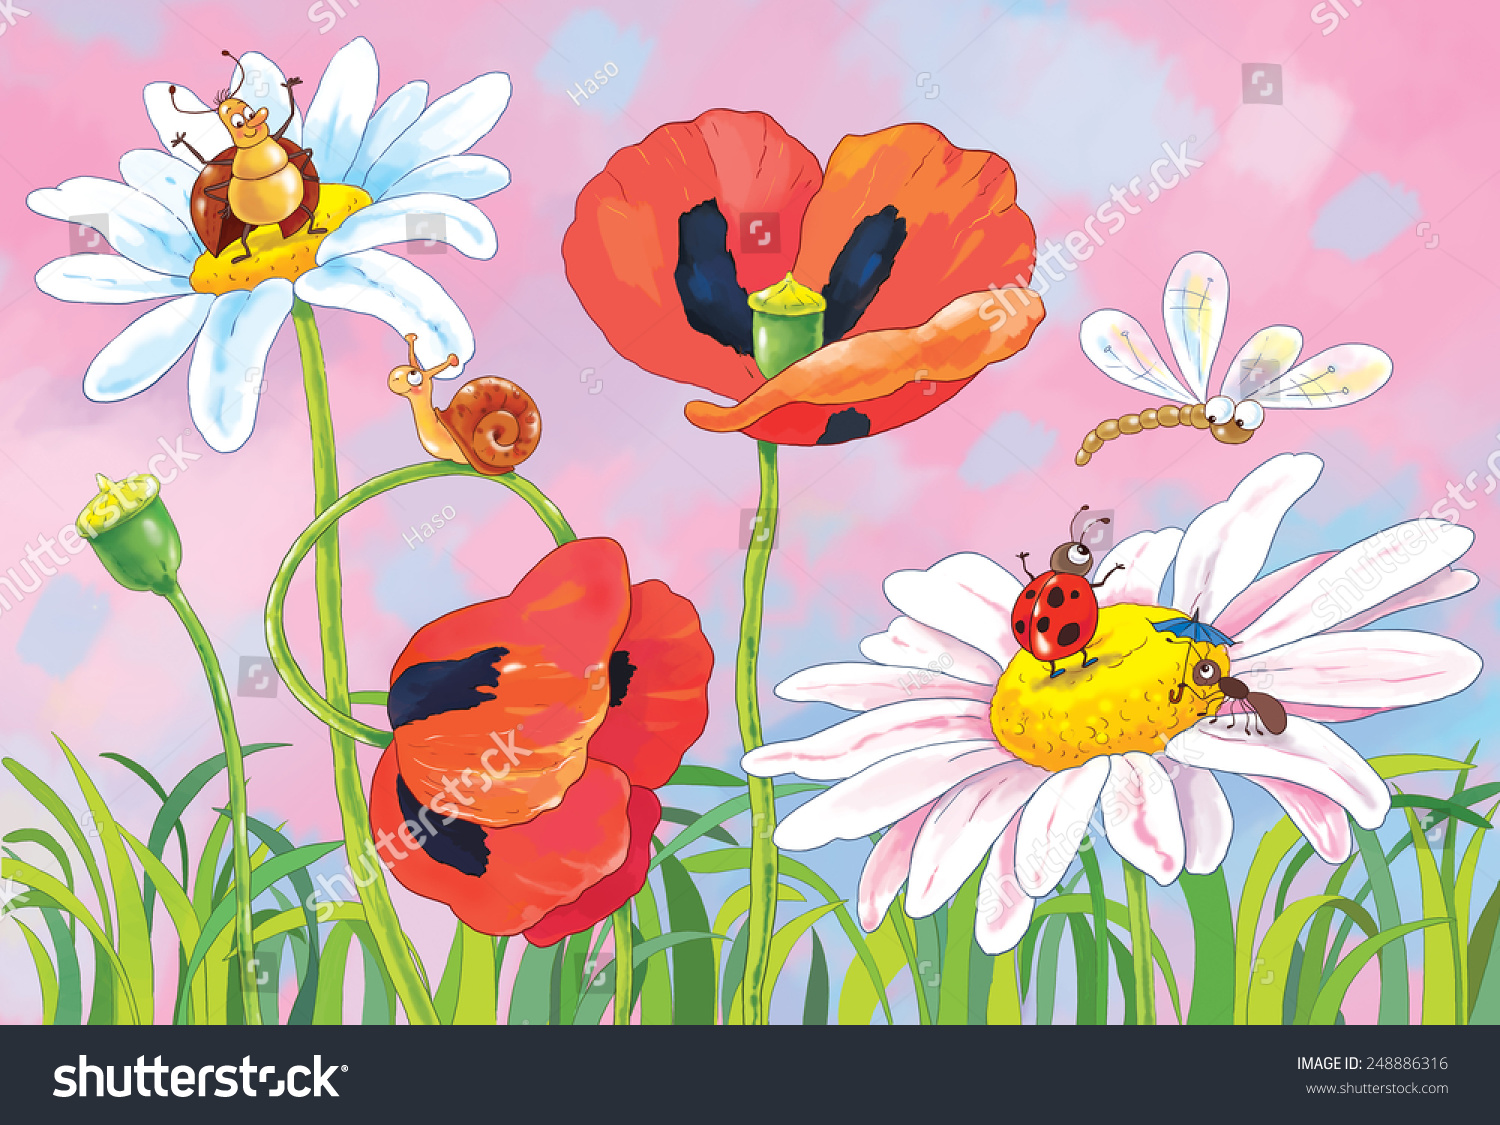 Green Grass Flowers Insects Poppies Daisies Stock Illustration ...